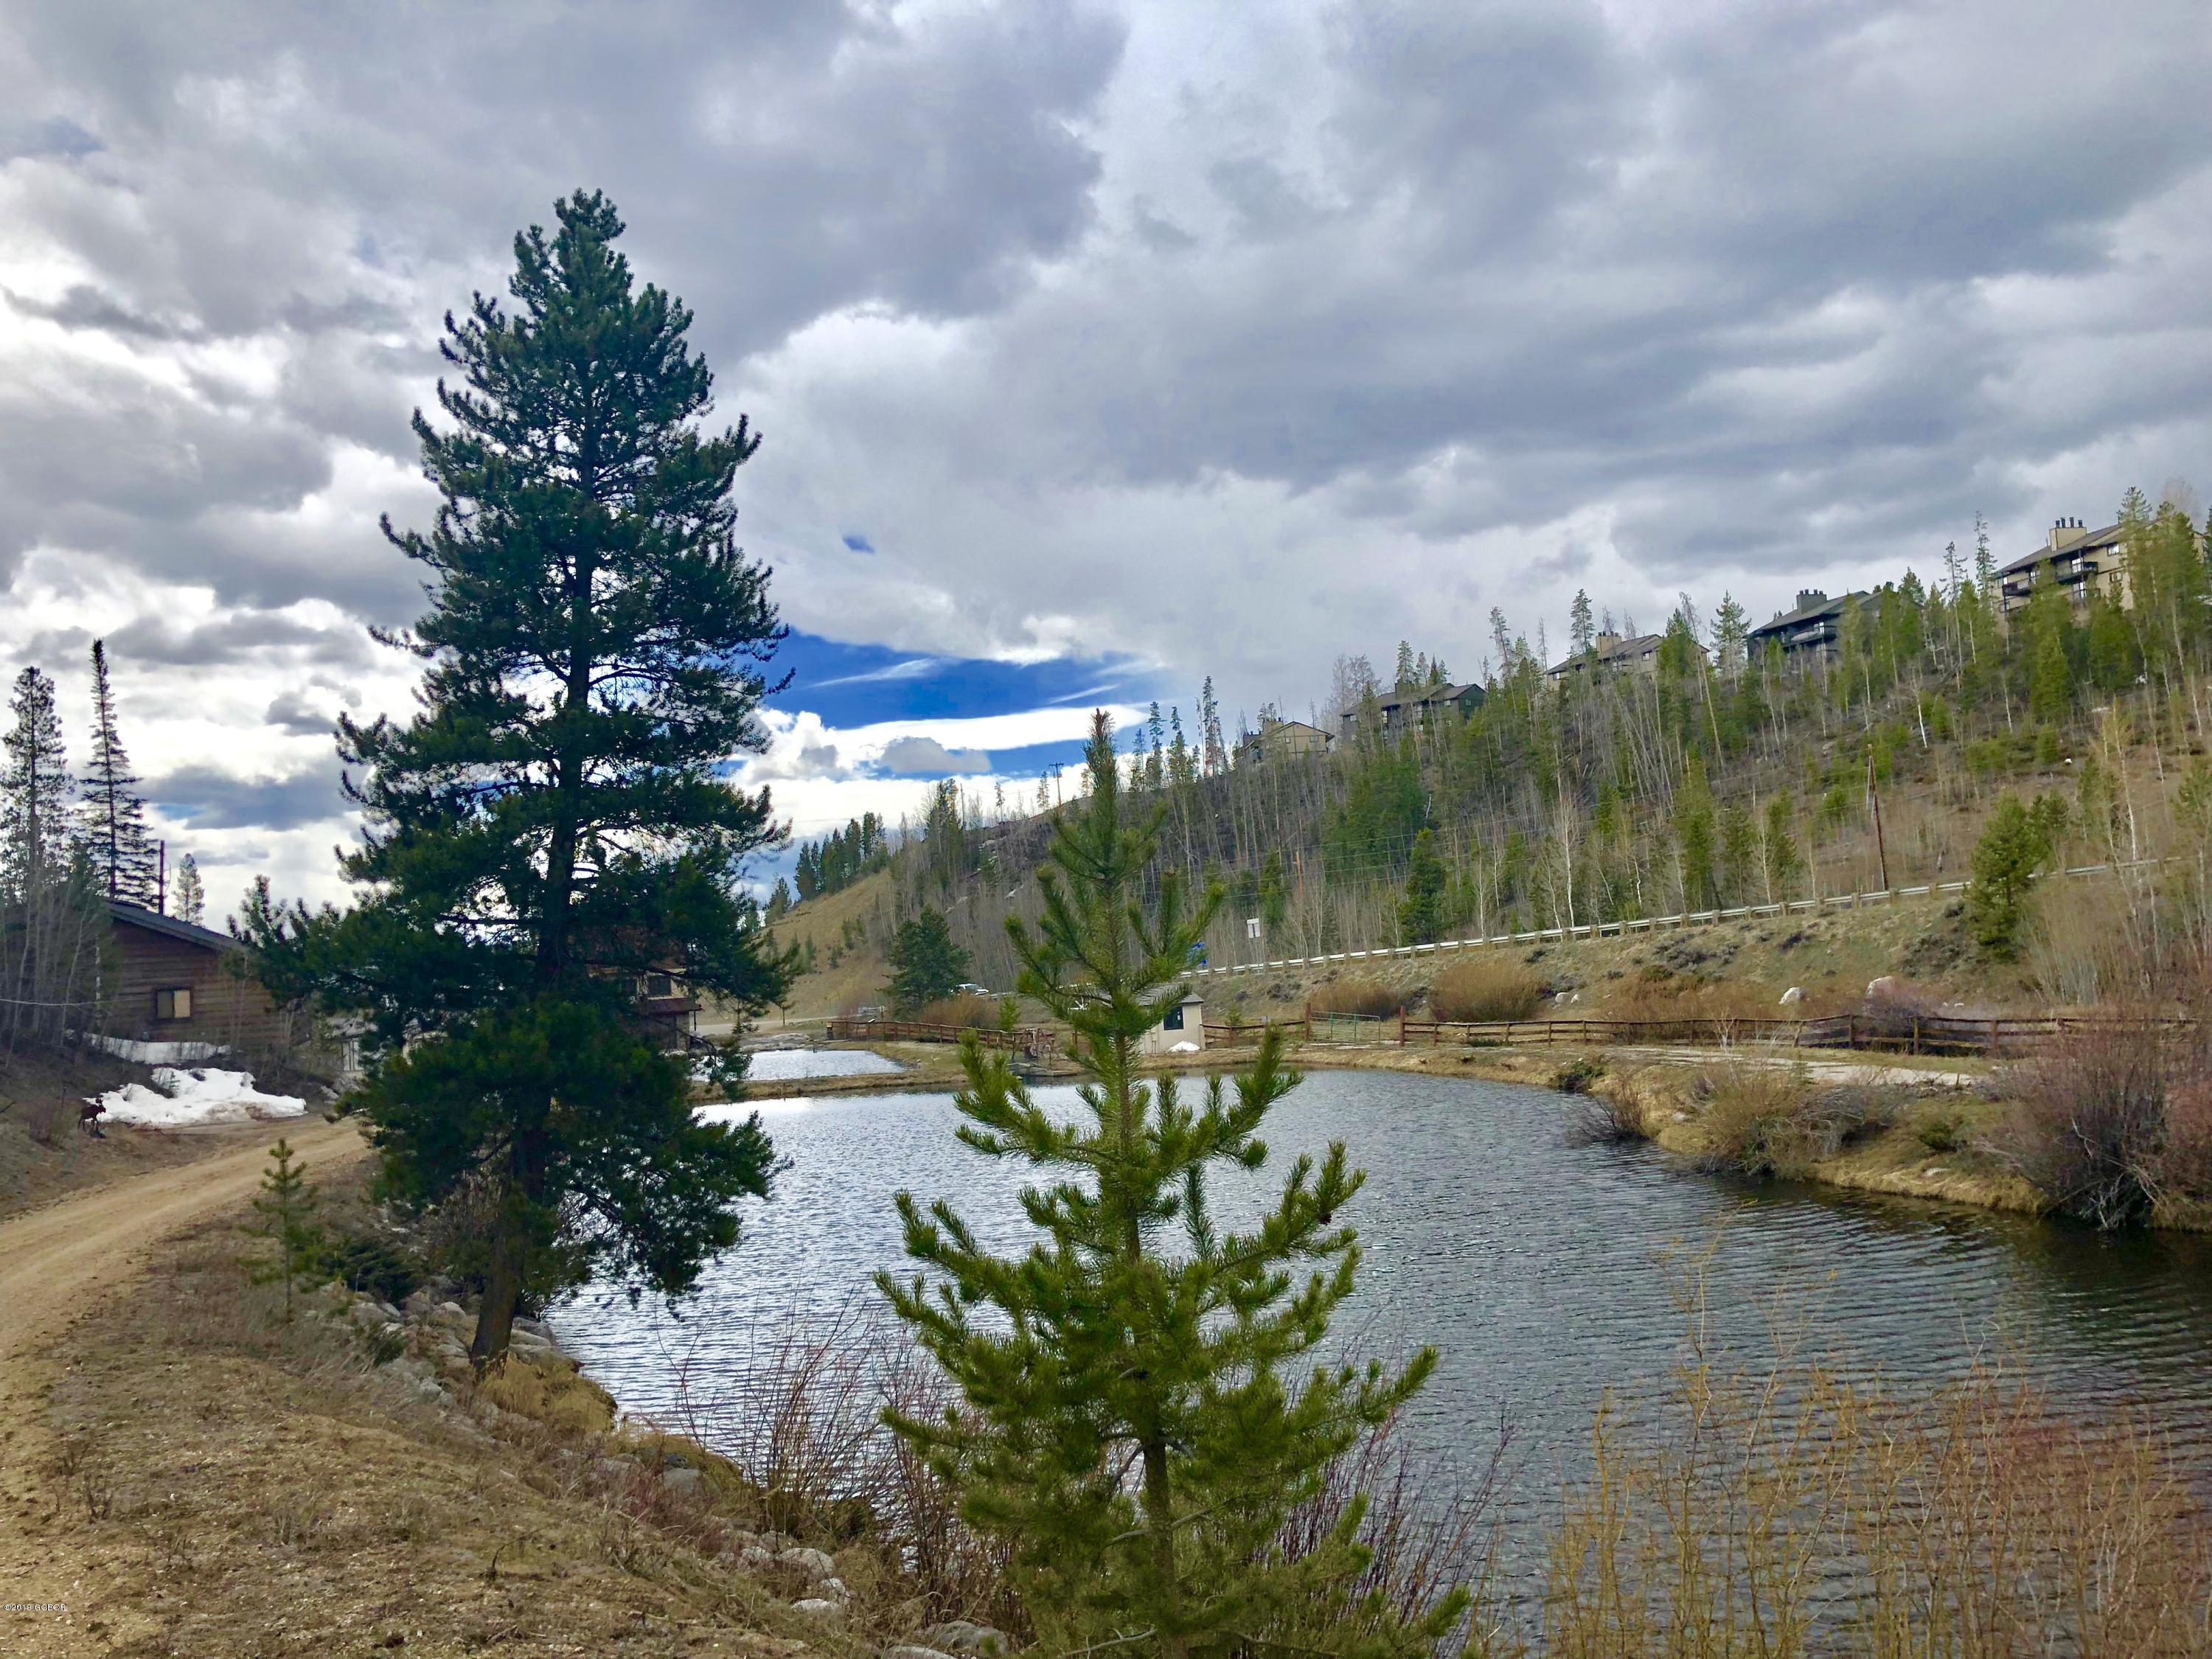 MLS# 19-511 - 11 - TBD Pondview Lane  #, Grand Lake, CO 80447